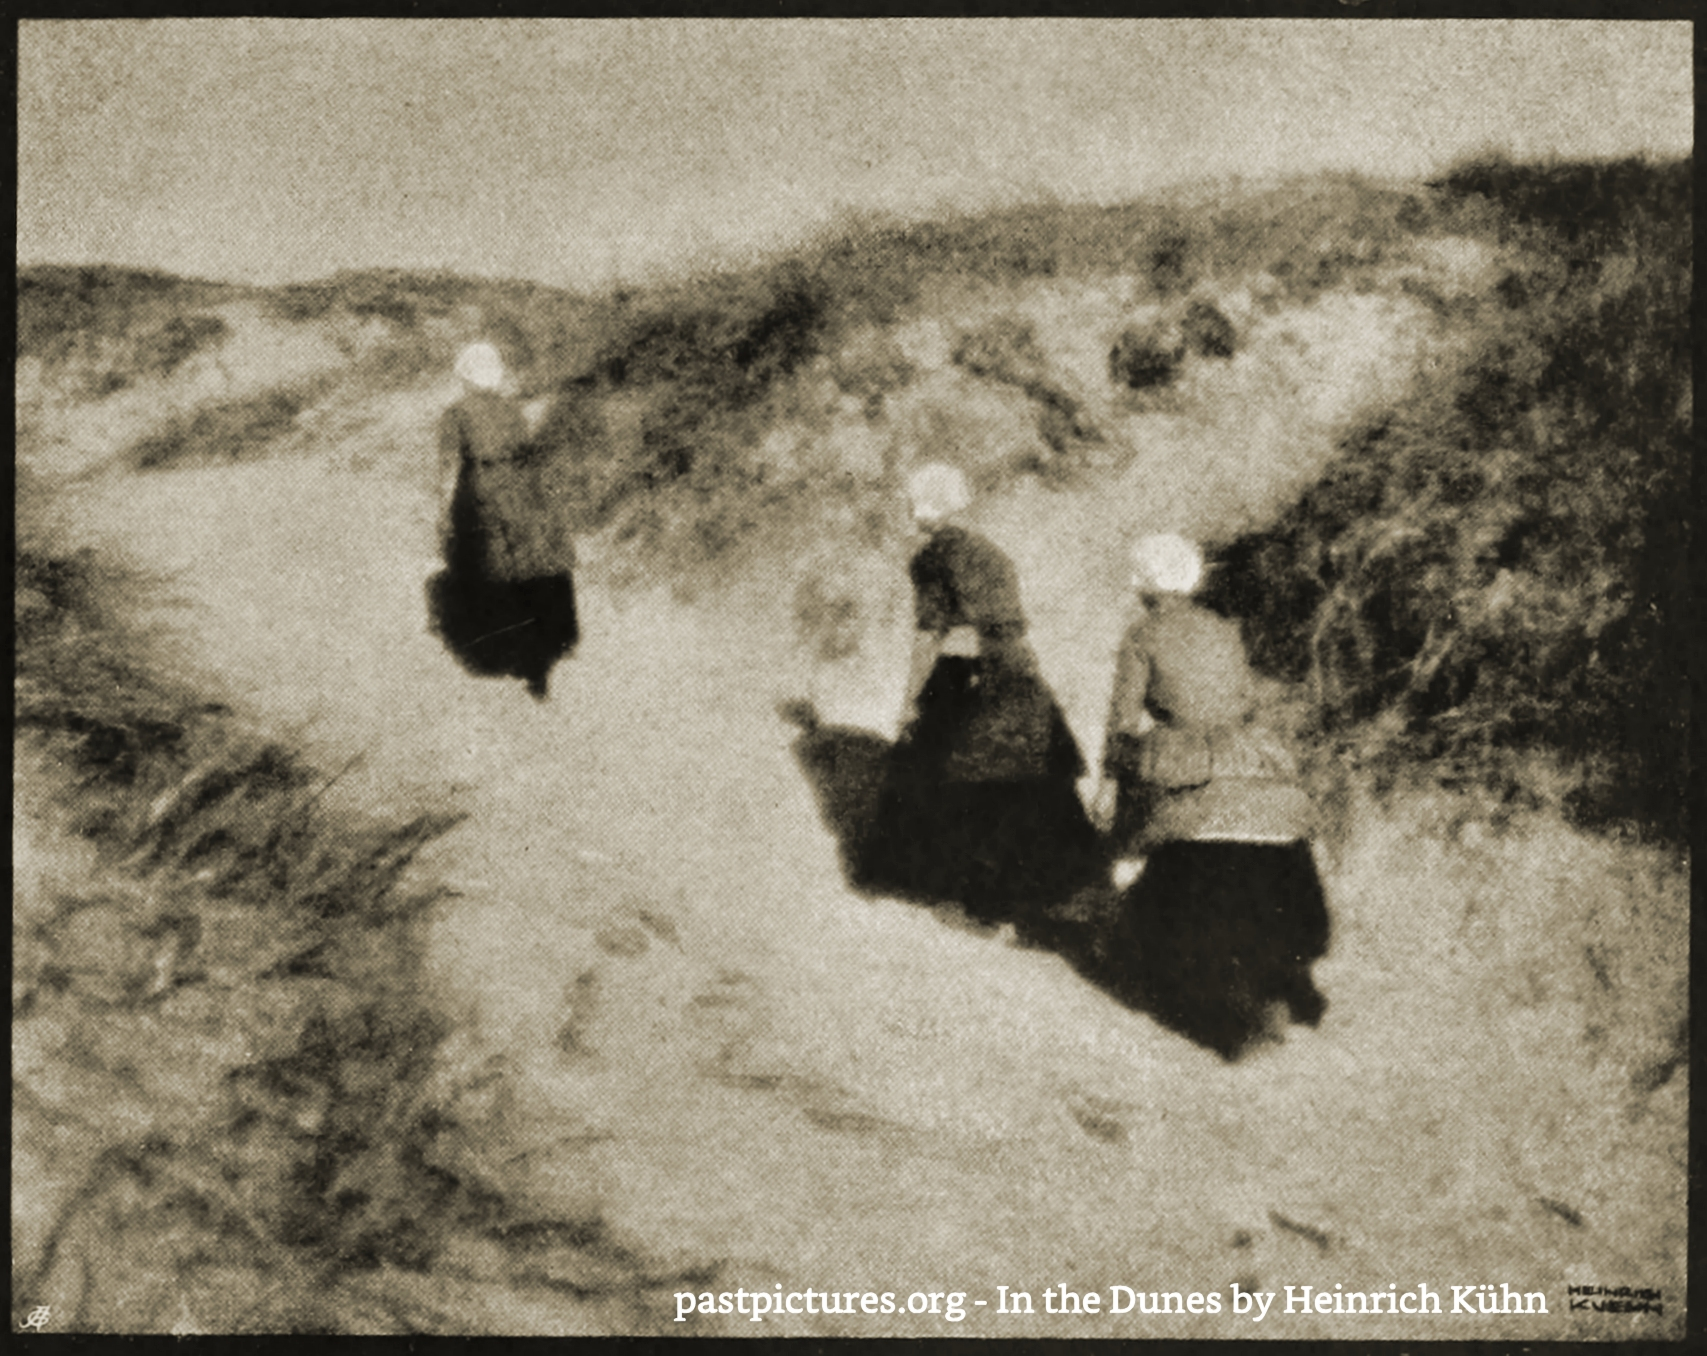 In the Dunes by Heinrich Kühn about 1905